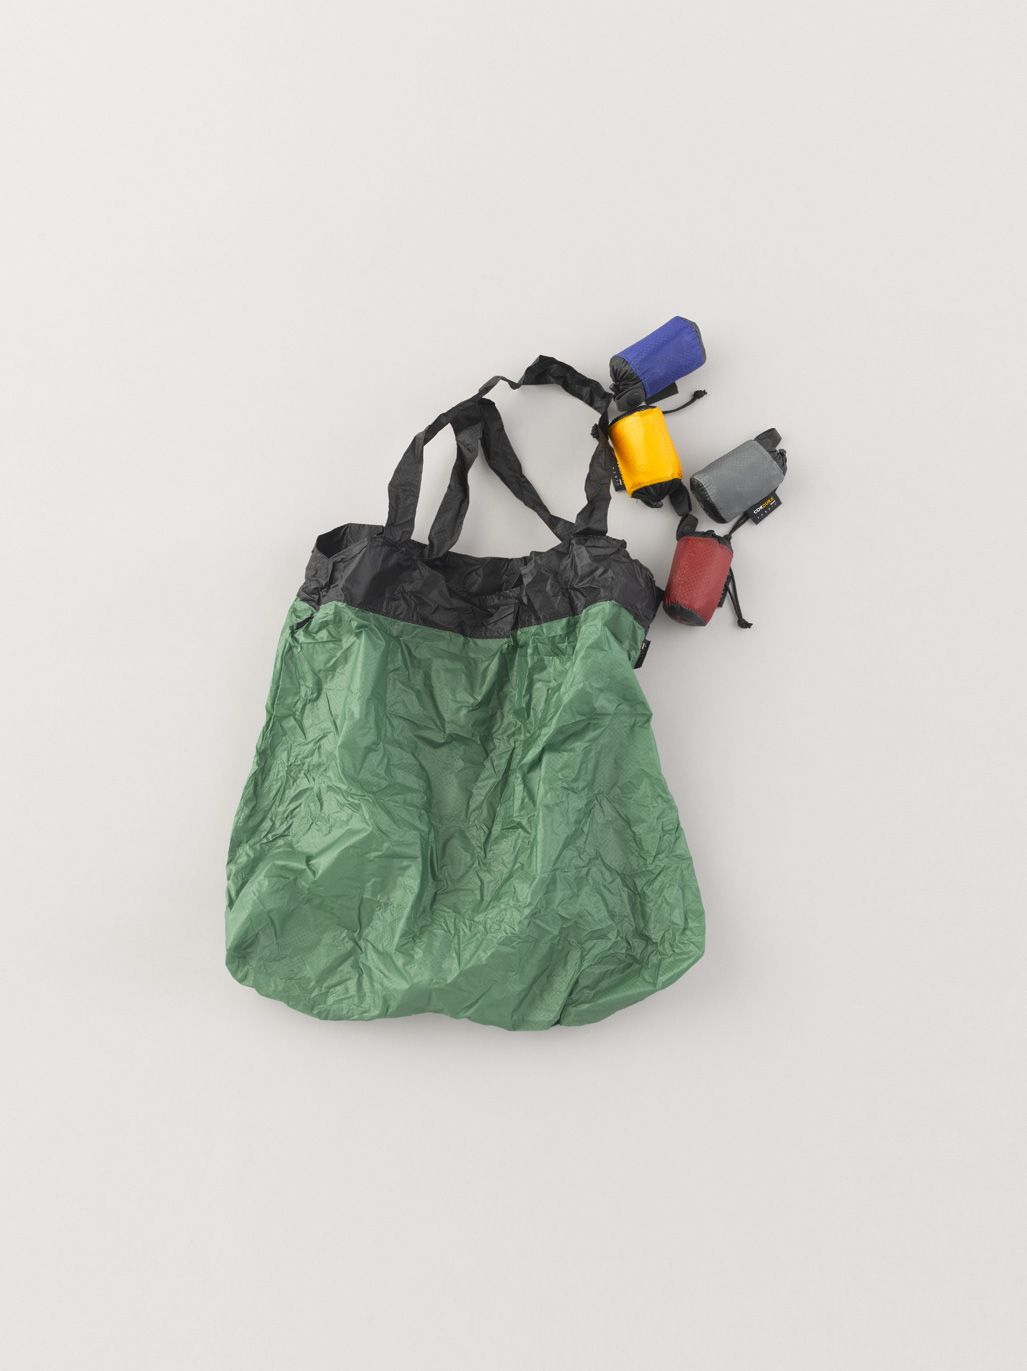 71f135508229 Yves Behar recycles boat sails and wetsuits to produce Deep Blue Bag ...